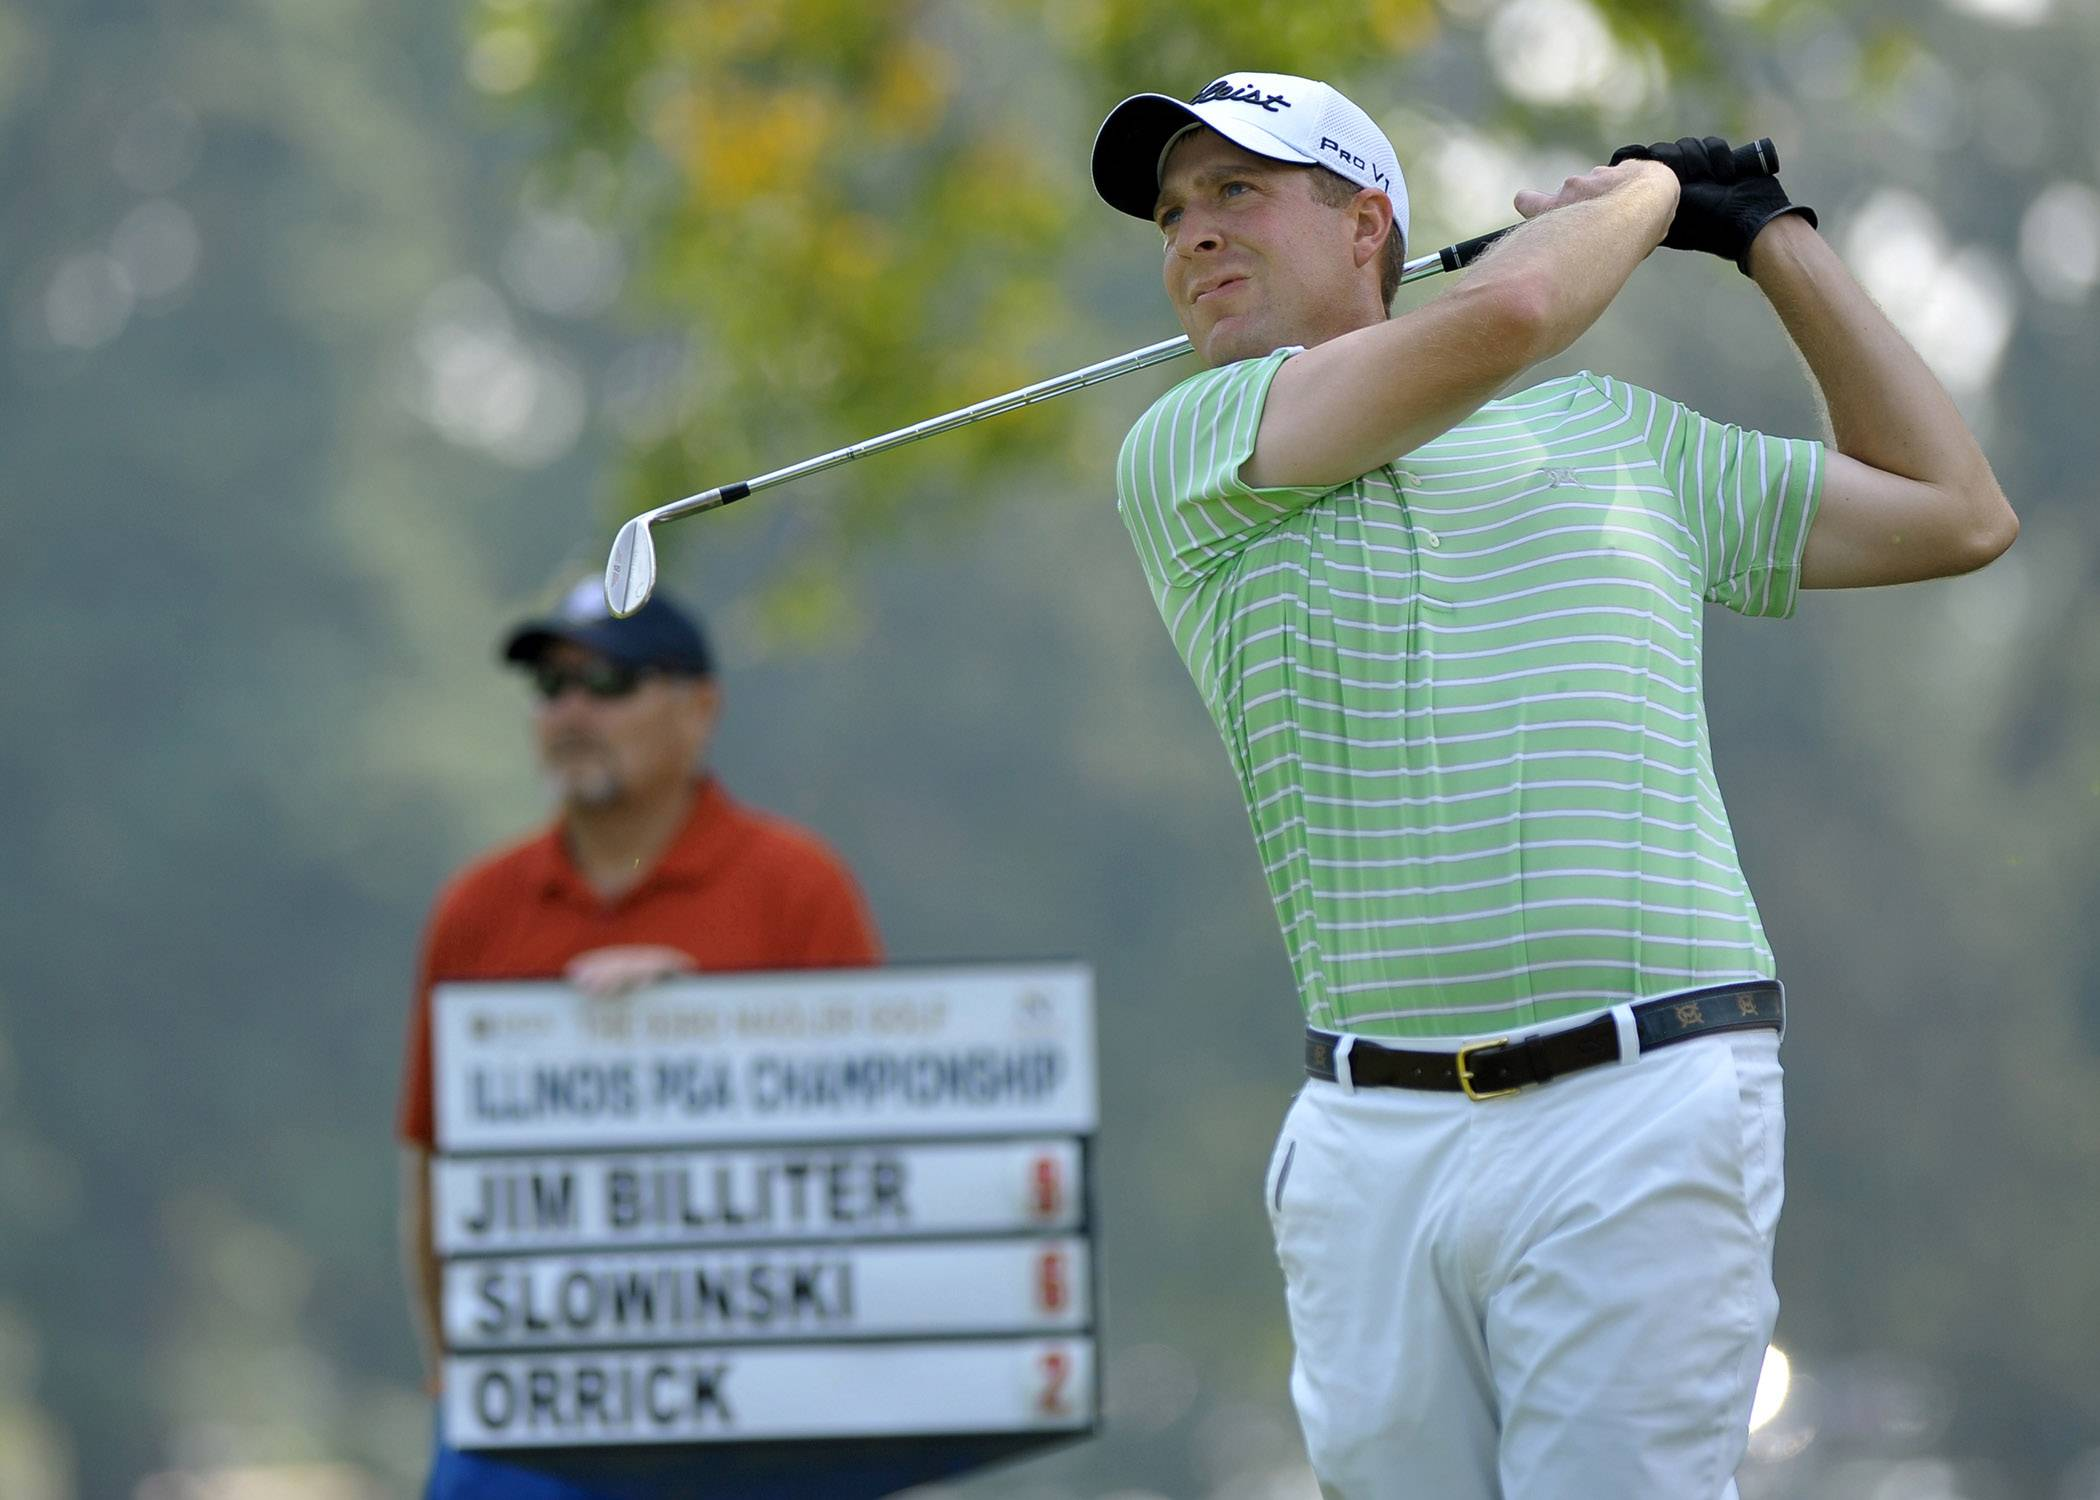 Jim Billiter won two of four majors in the Illinois PGA last year, and he'll defend his Match Play Championship on Monday at Kemper Lakes.